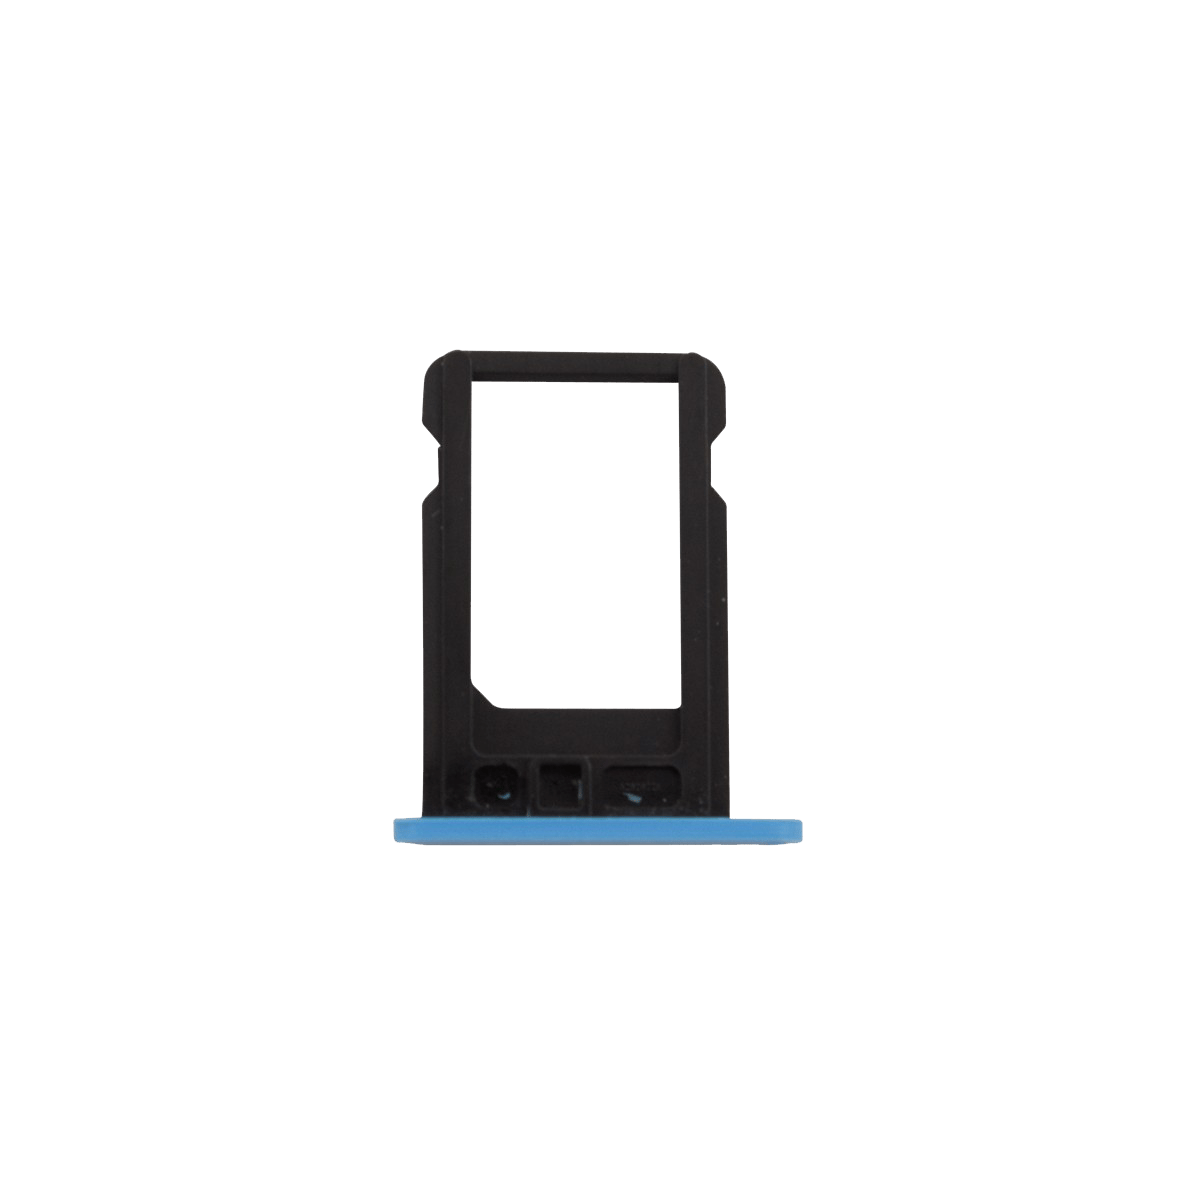 iPhone 5c Blue SIM Card Tray Replacement